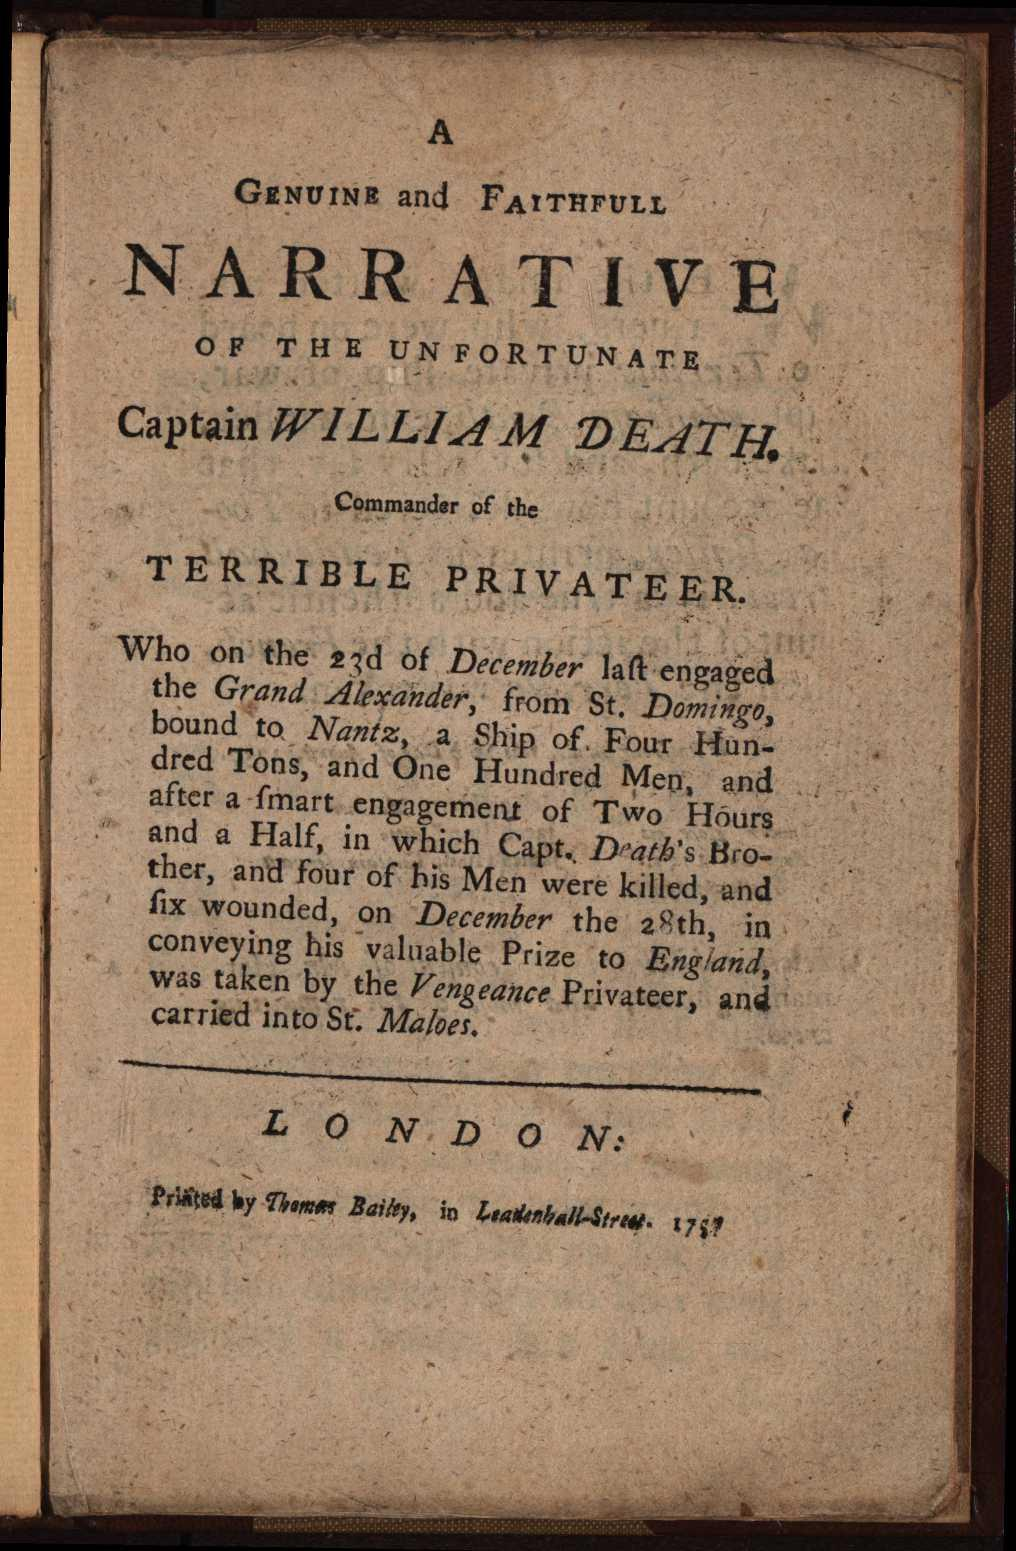 Title page of A genuine and faithfull narrative of the unfortunate Captain William Death by Joseph Hart